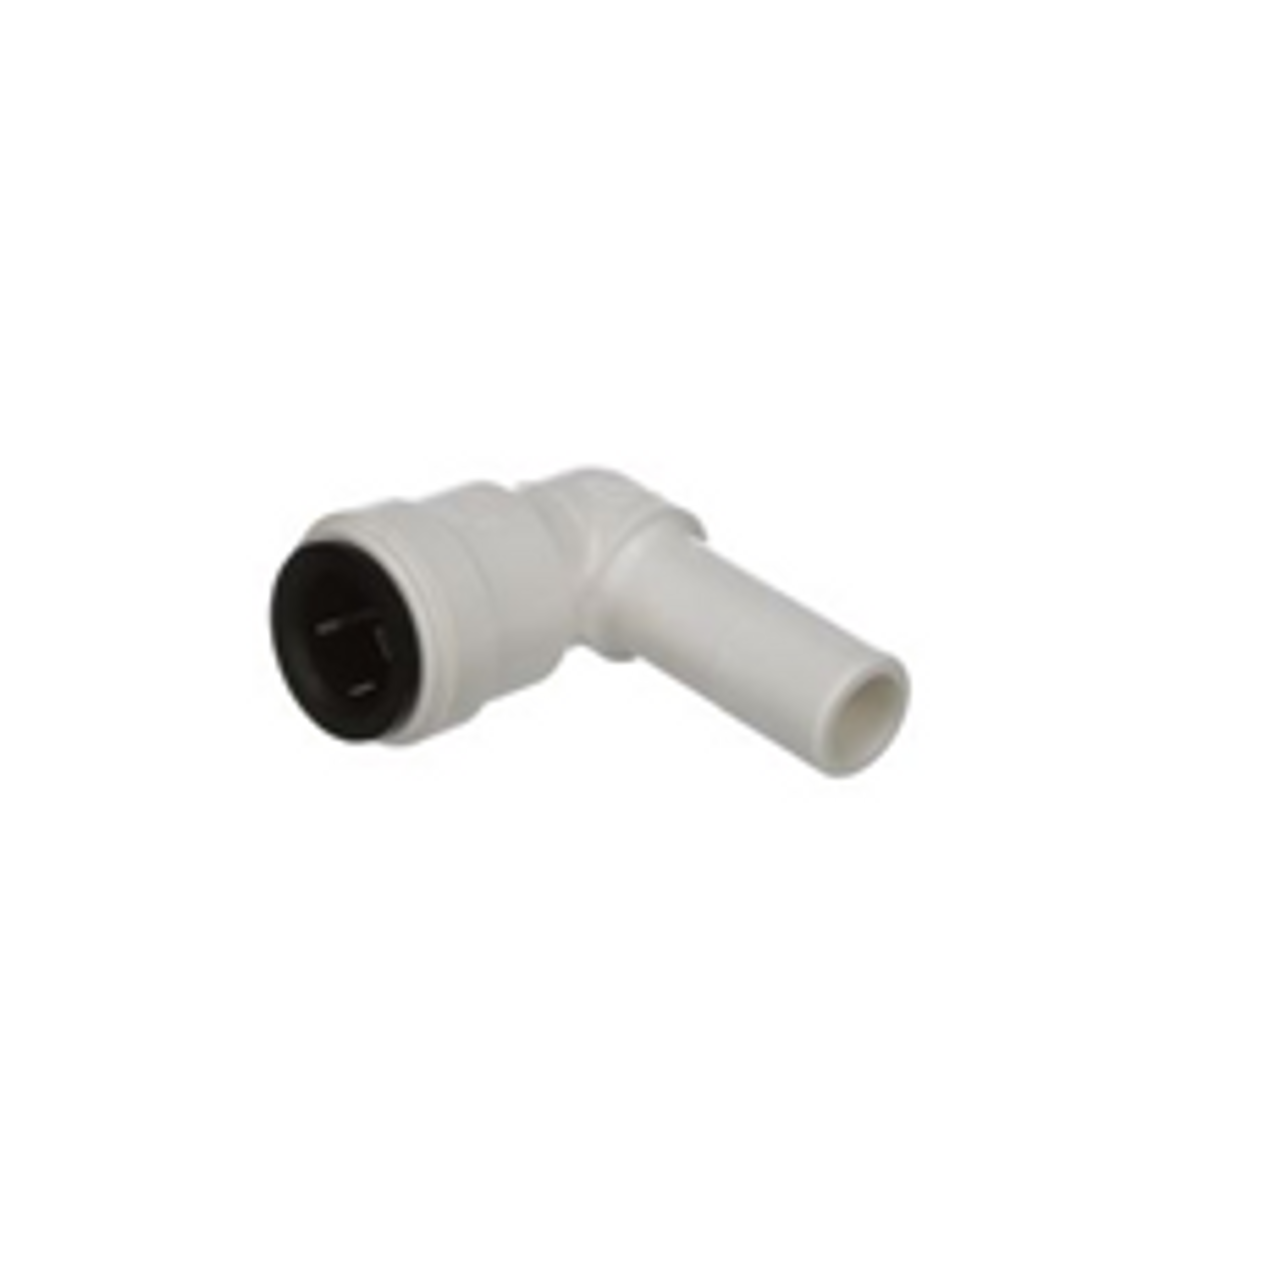 "½"" CTS stackable union elbow 3518-10"